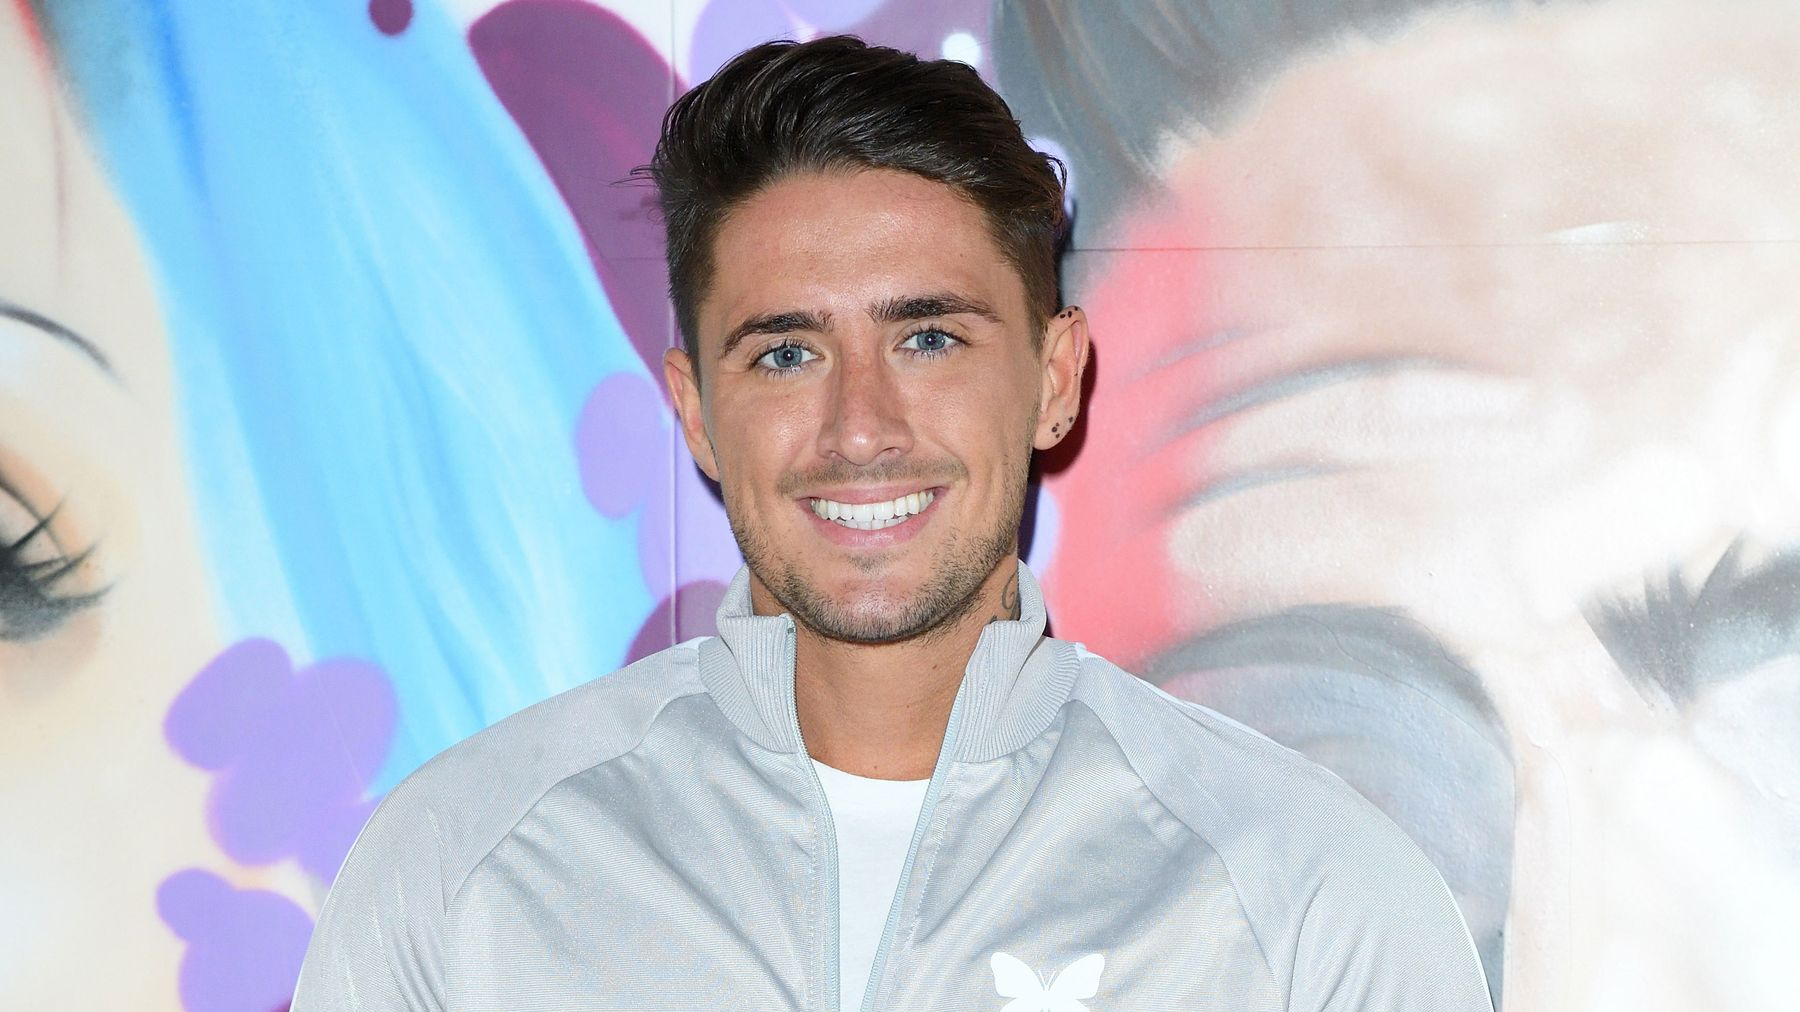 Stephen Bear gets ex's name on wrist in desperate attempt to